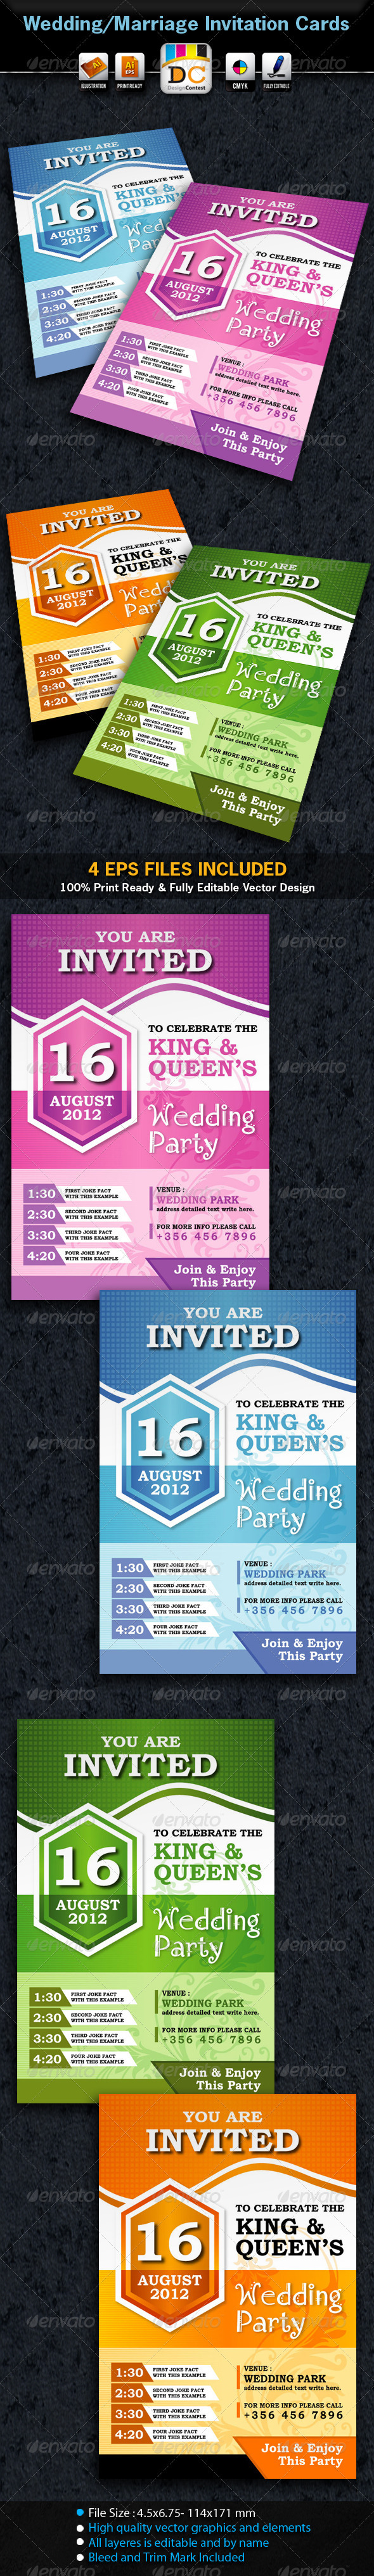 MB_Wedding/Marriage Invitation Card Sets - Weddings Cards & Invites